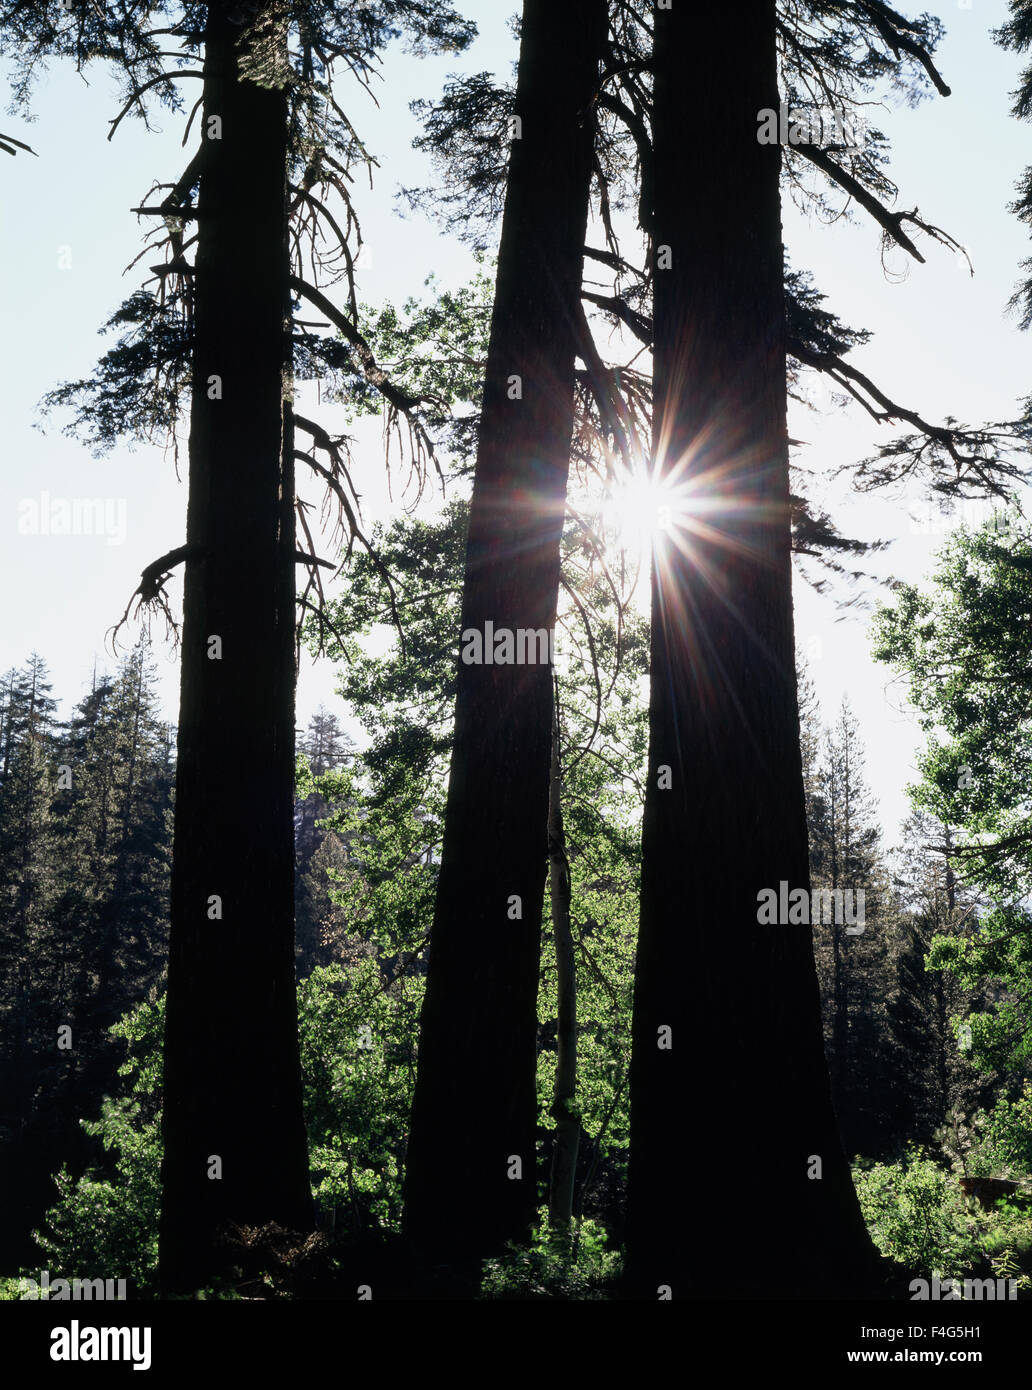 California, Sierra Nevada Mountains, Inyo National Forest, The sun's rays through a forest of Red Fir Trees - Stock Image